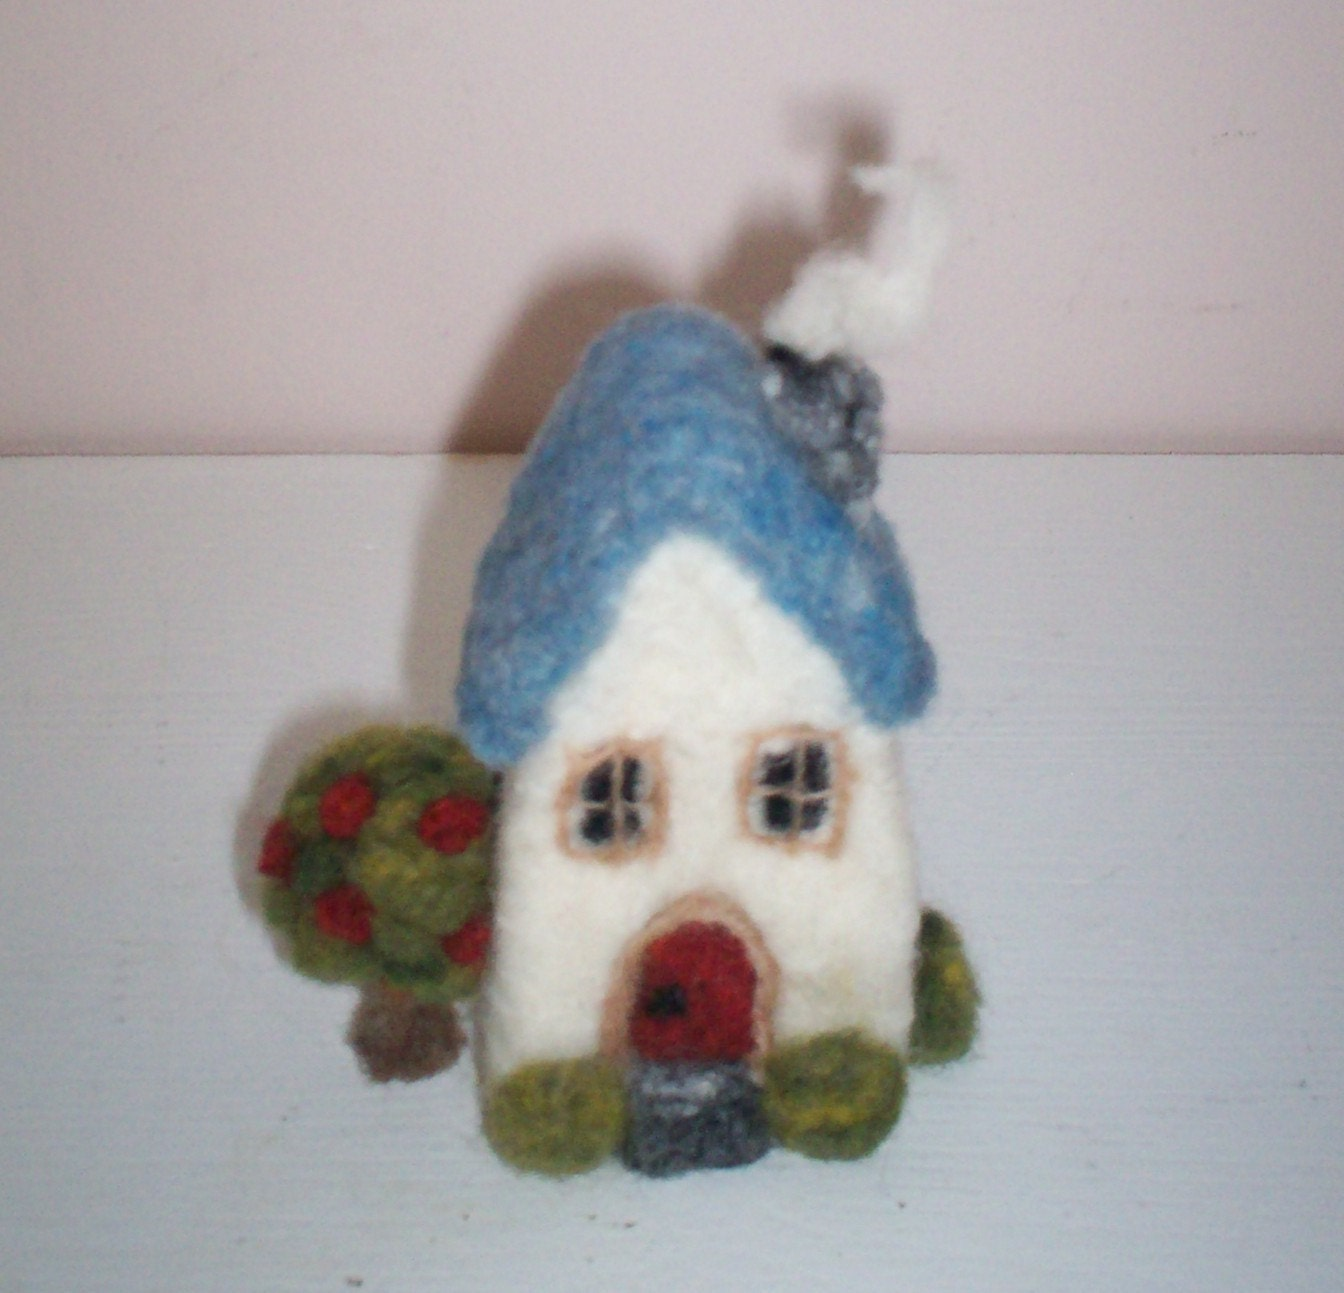 Custom Needle Felted Wool Miniature House Sculpture - Pre Order